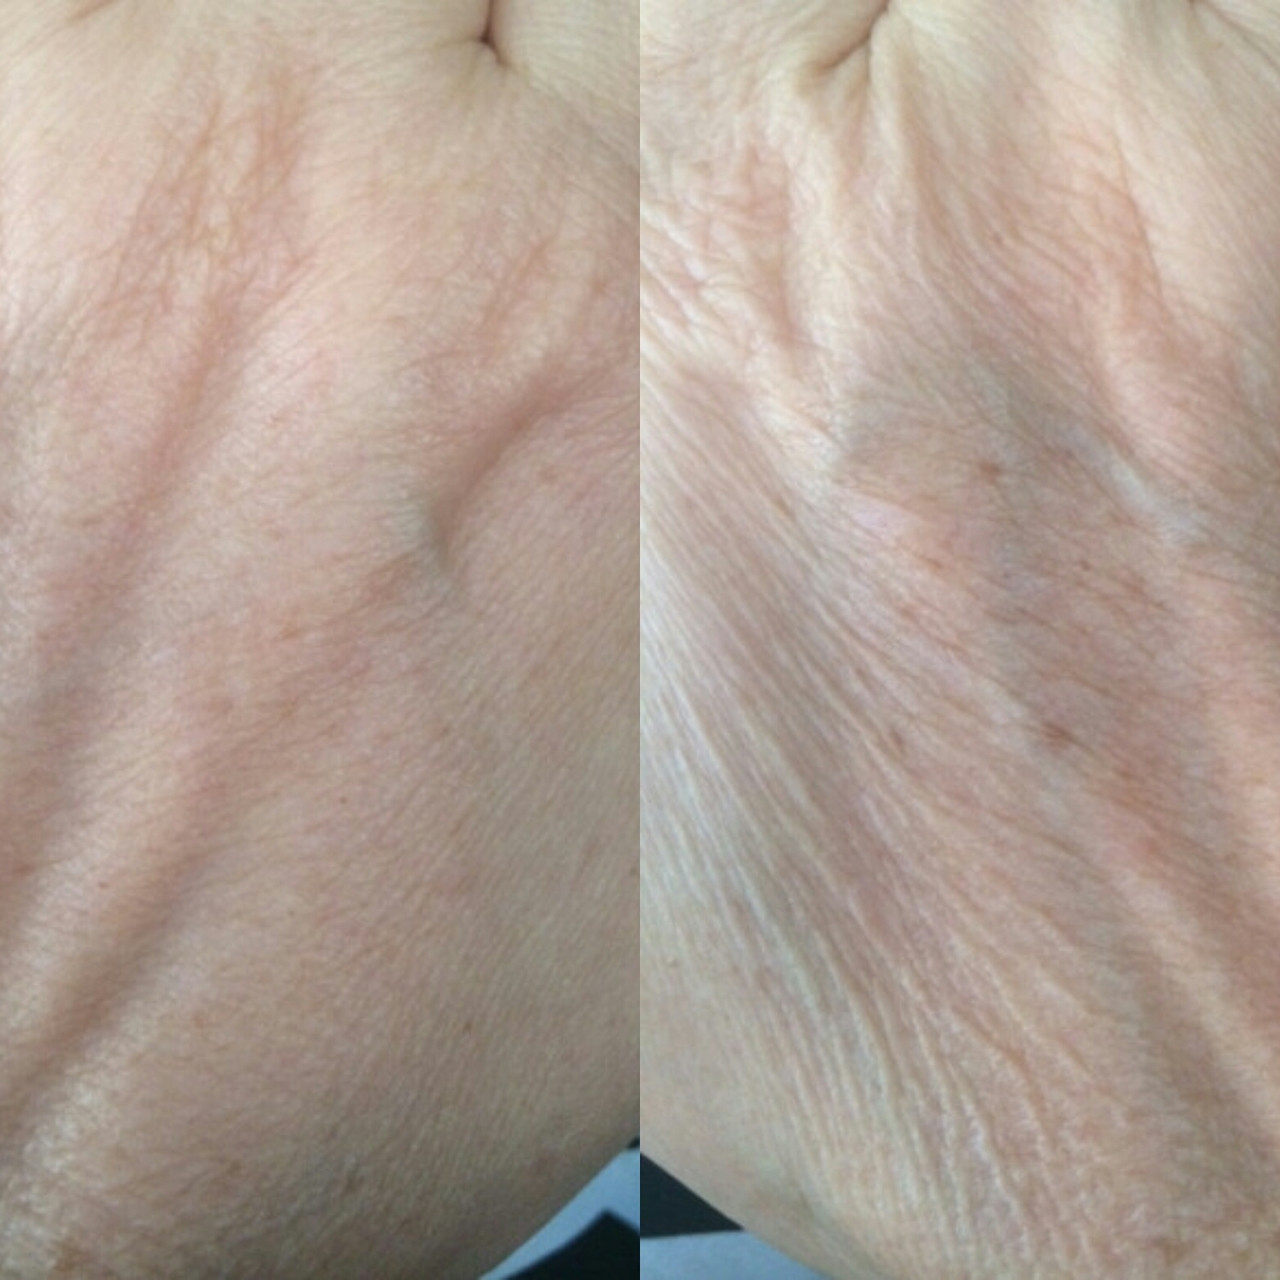 left hand vs right hand! Kaitlyns on the go proof of her miracle cream!